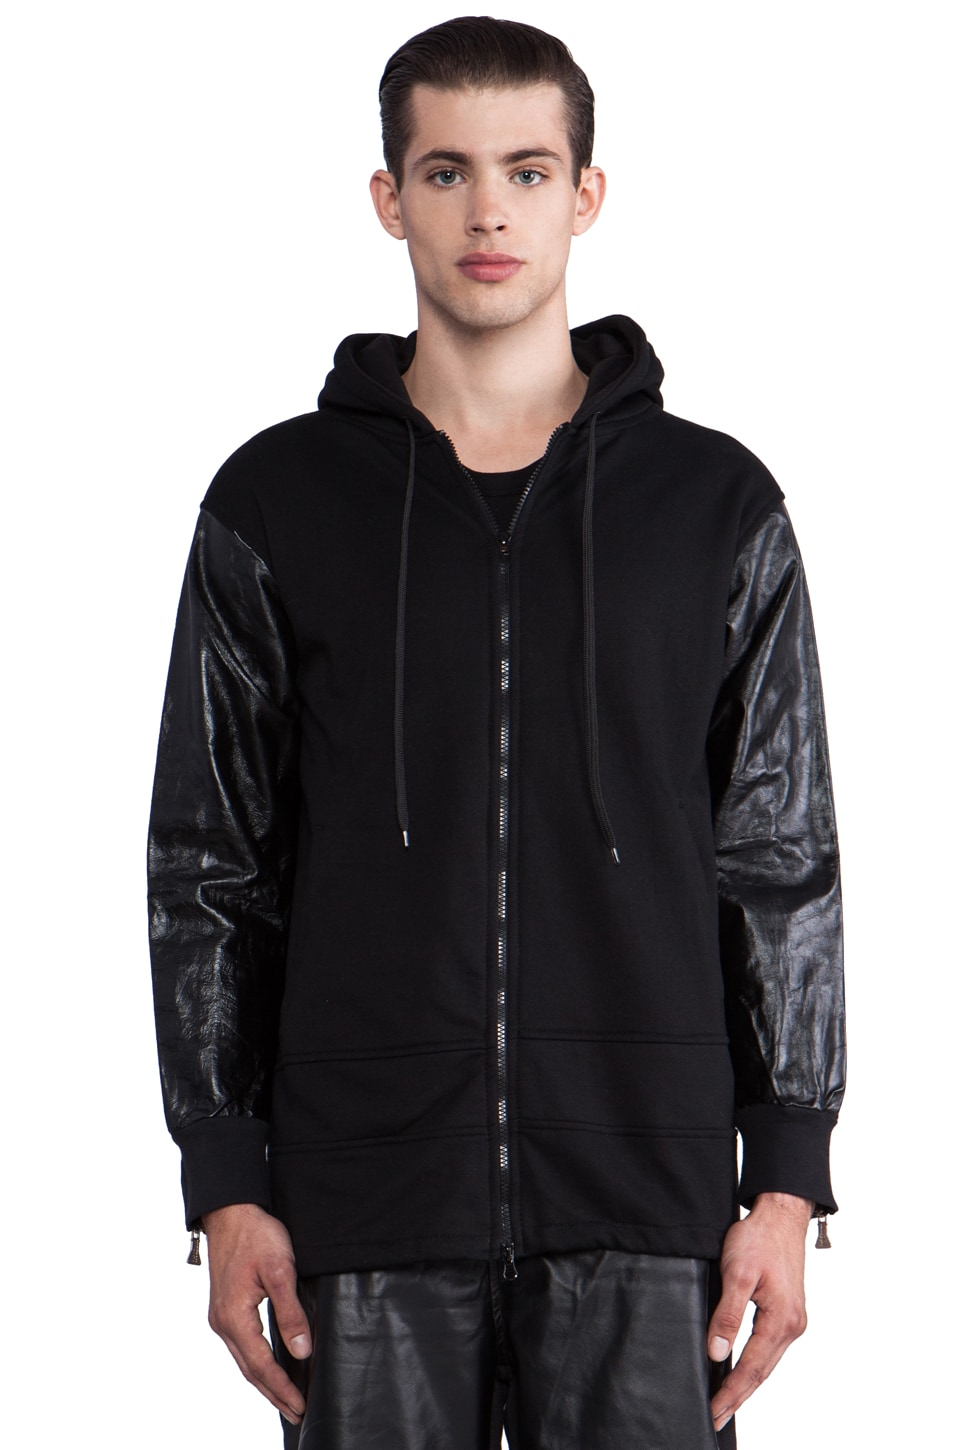 Iridium Zip Hoody w/Leather Sleeves in Black